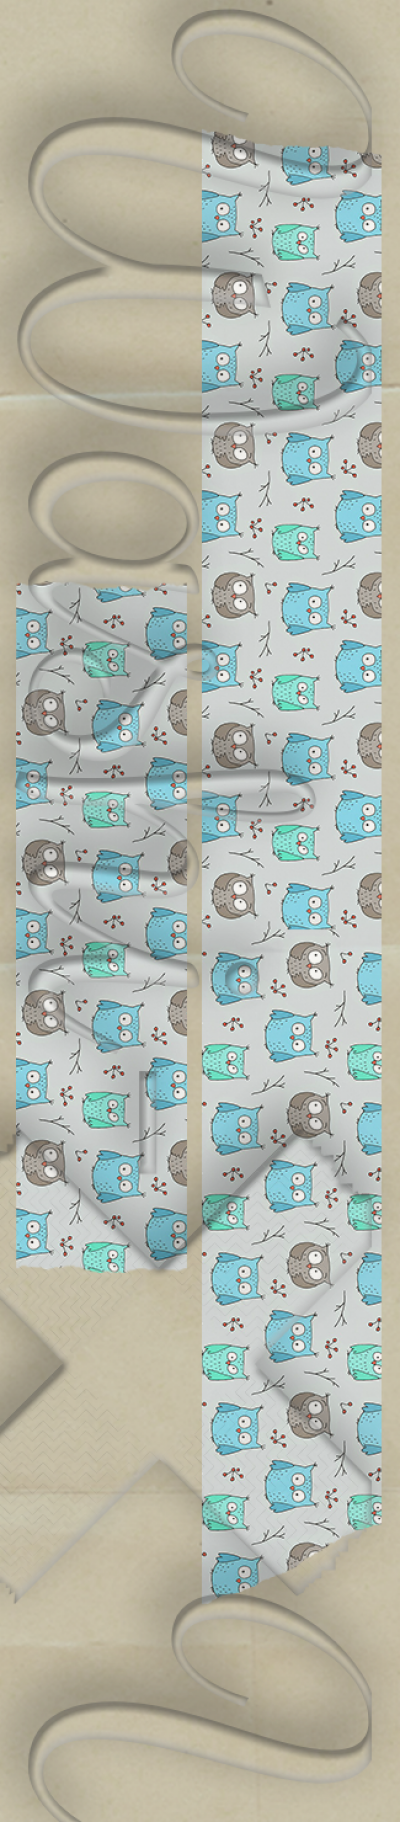 Owls patterned washi tape